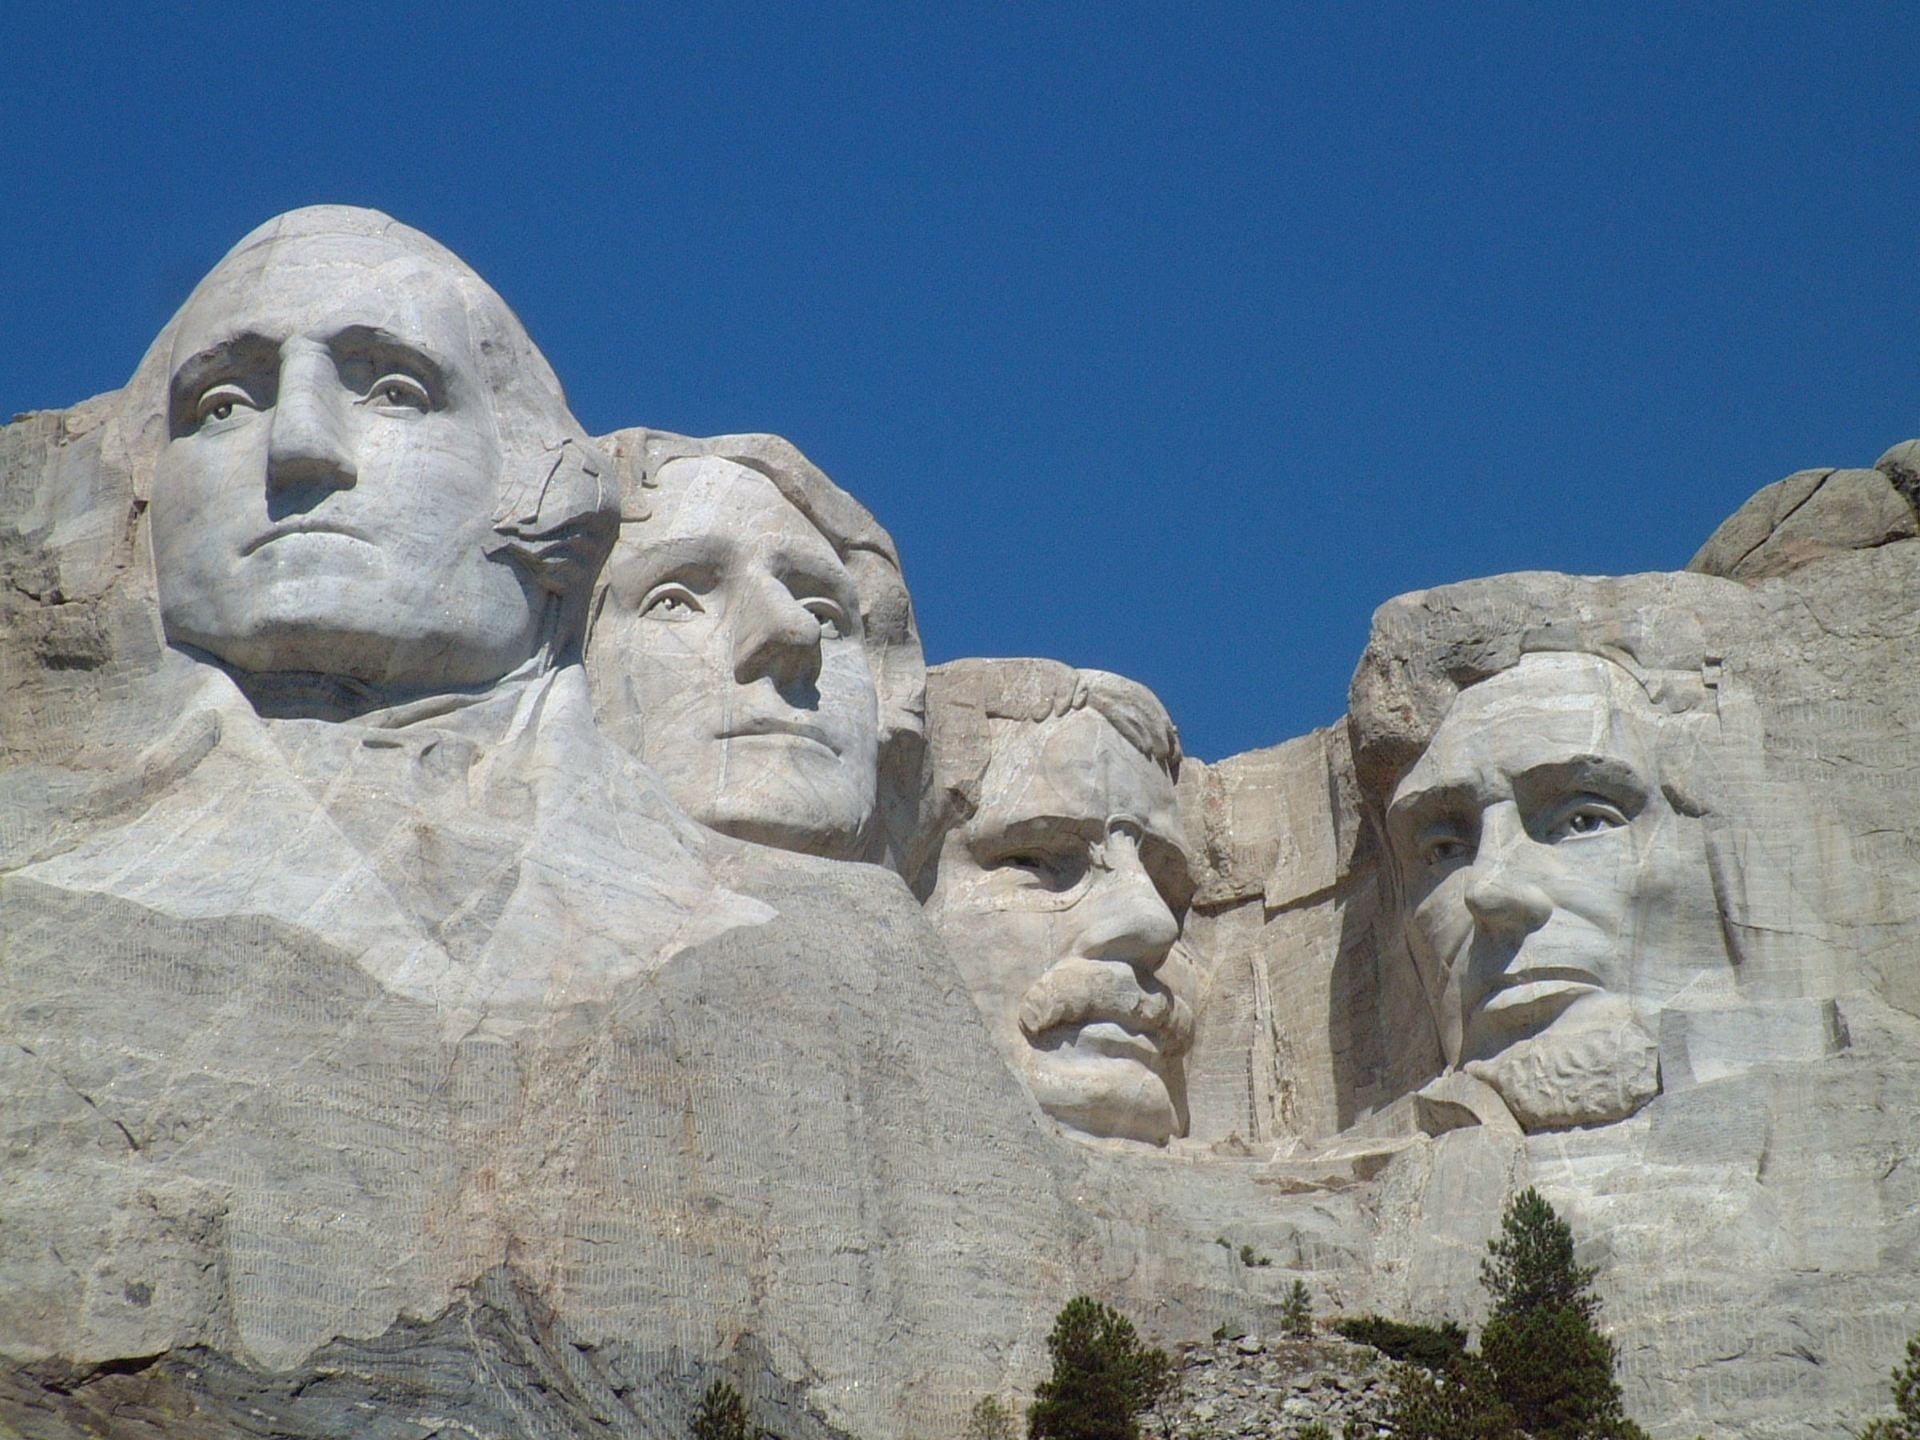 Mount Rushmore monument at South Dakota depicting founding fathers and Presidents of the United States (From Left- George Washington, Thomas Jefferson, Theodore Roosevelt and Abraham Lincoln)